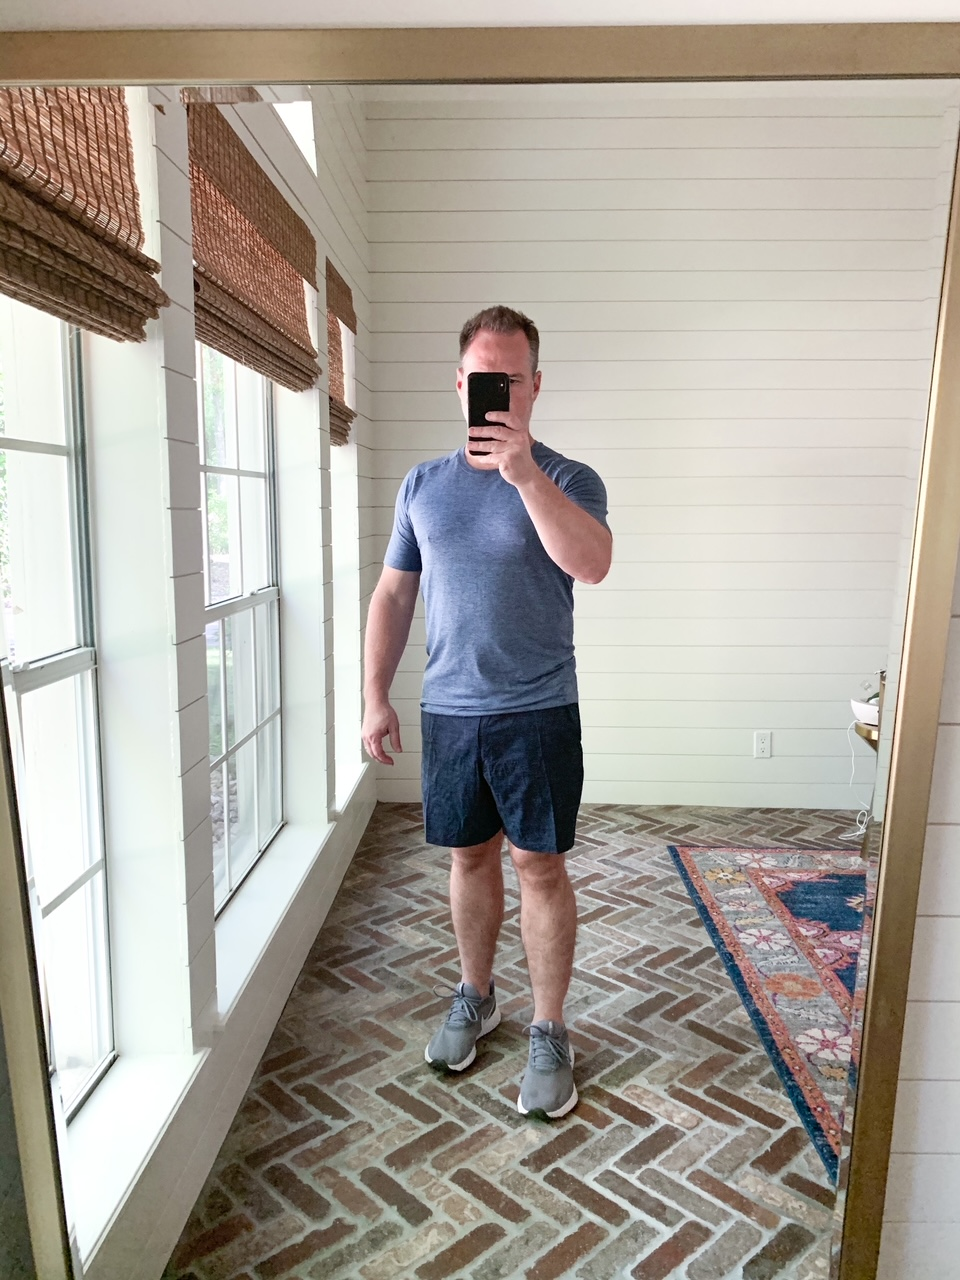 Men's Workout Gear by popular Houston fashion blog, The House of Fancy: image of a man wearing a Lululemon blue shirt, Lululemon shorts, and grey athletic shoes.